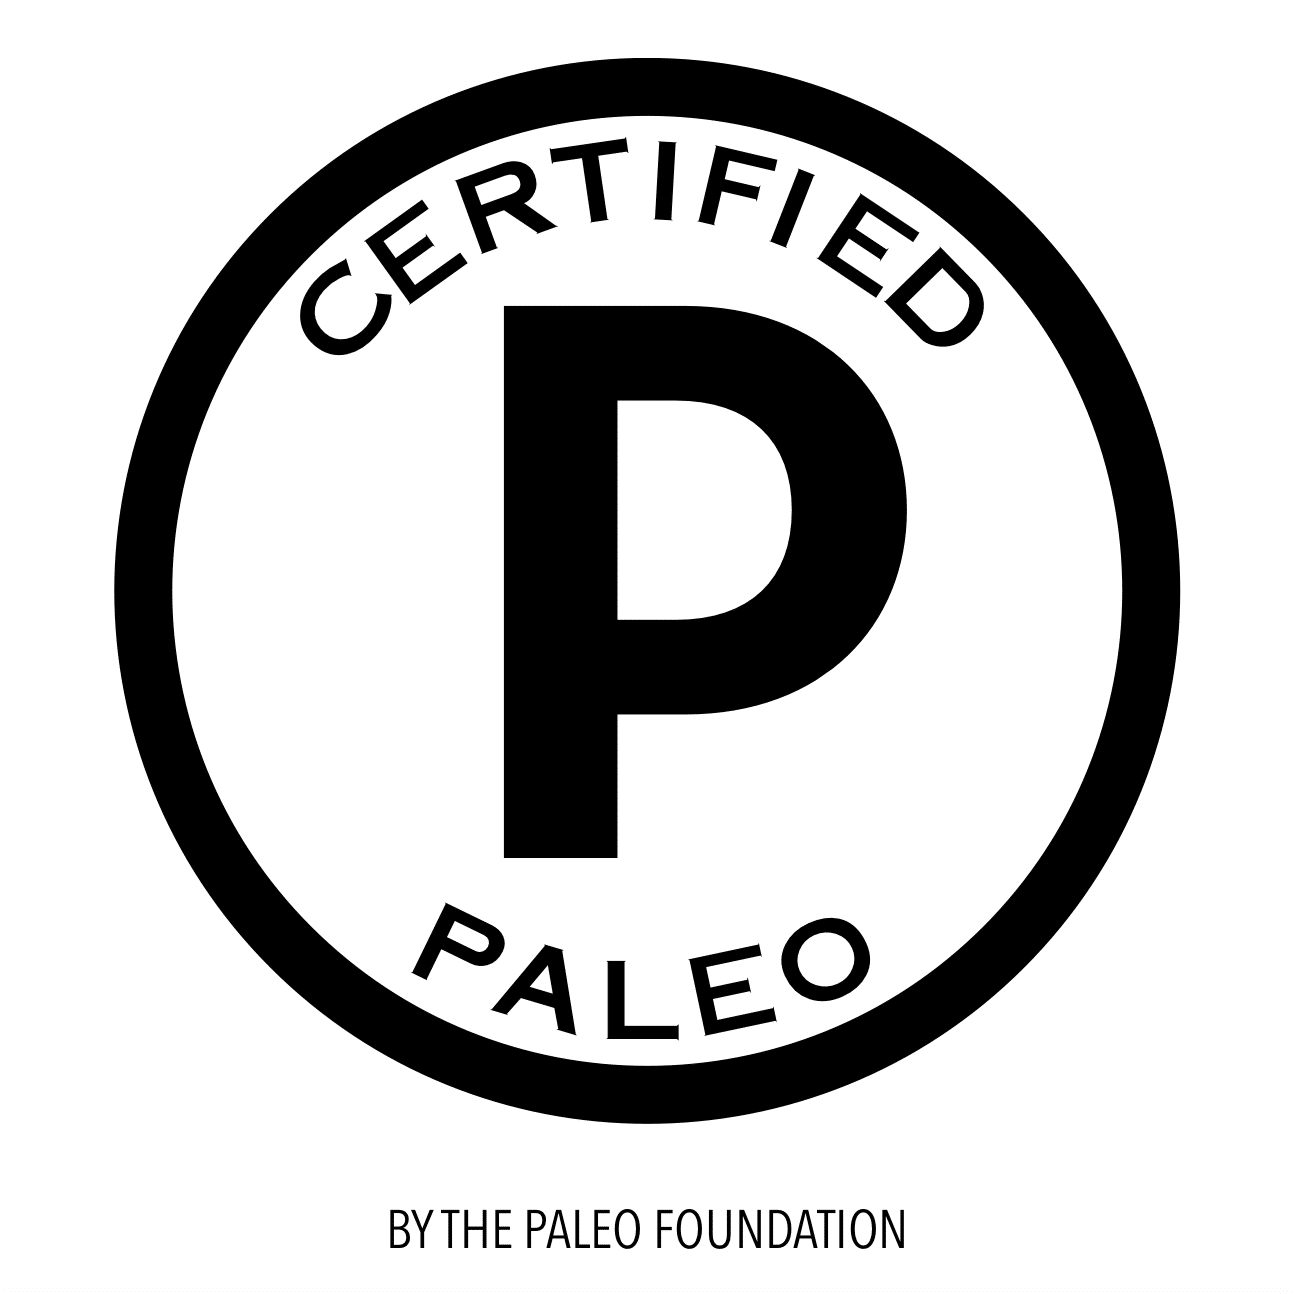 5 Common Food Certifications Certified Paleo Paleo Foundation